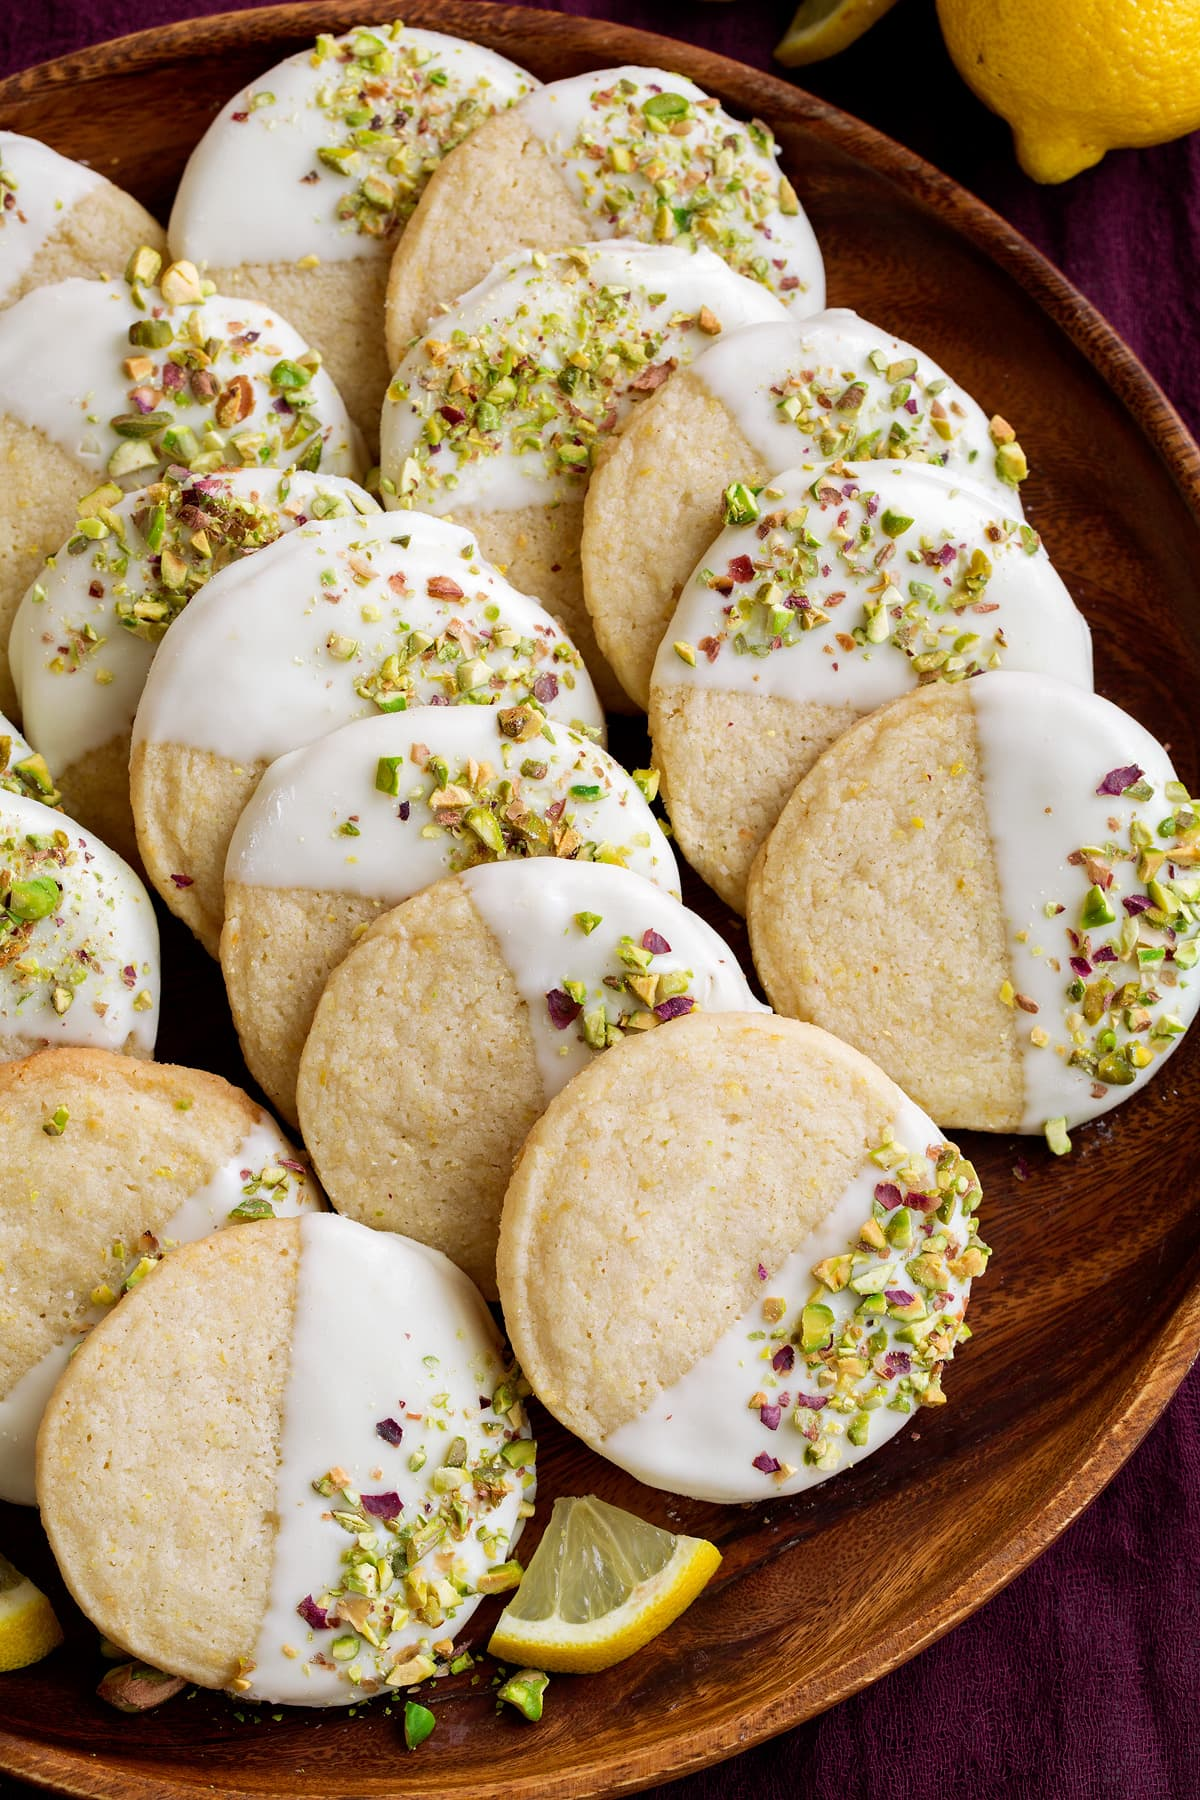 Shortbread cookies on a wooden serving plate. Flavored with lemon, white chocolate and pistachios.